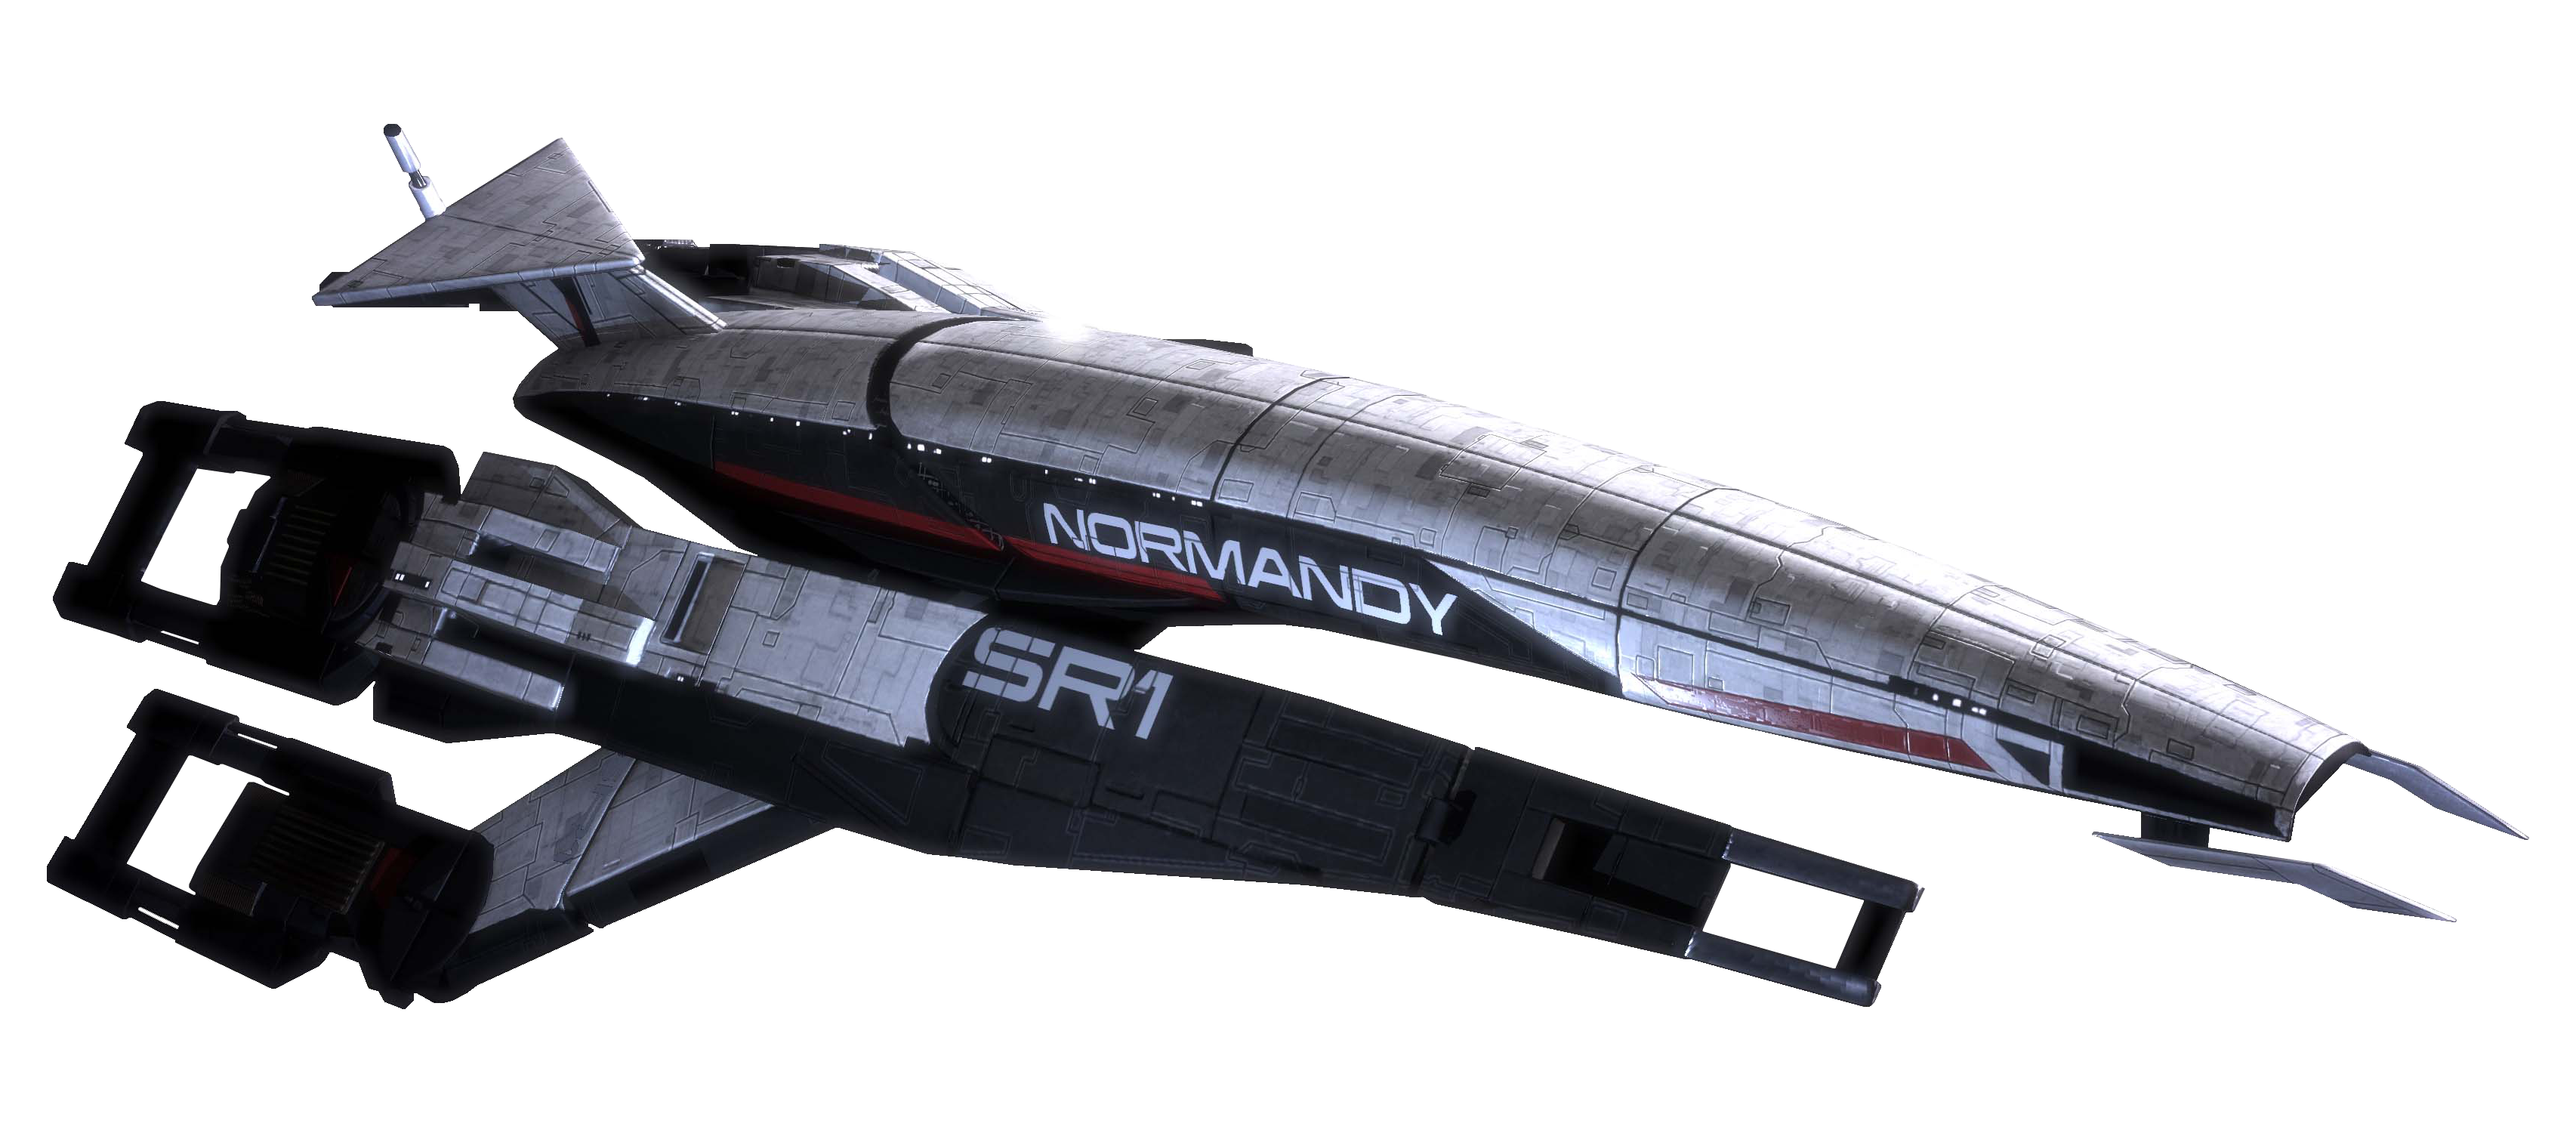 SSV Normandy SR-1